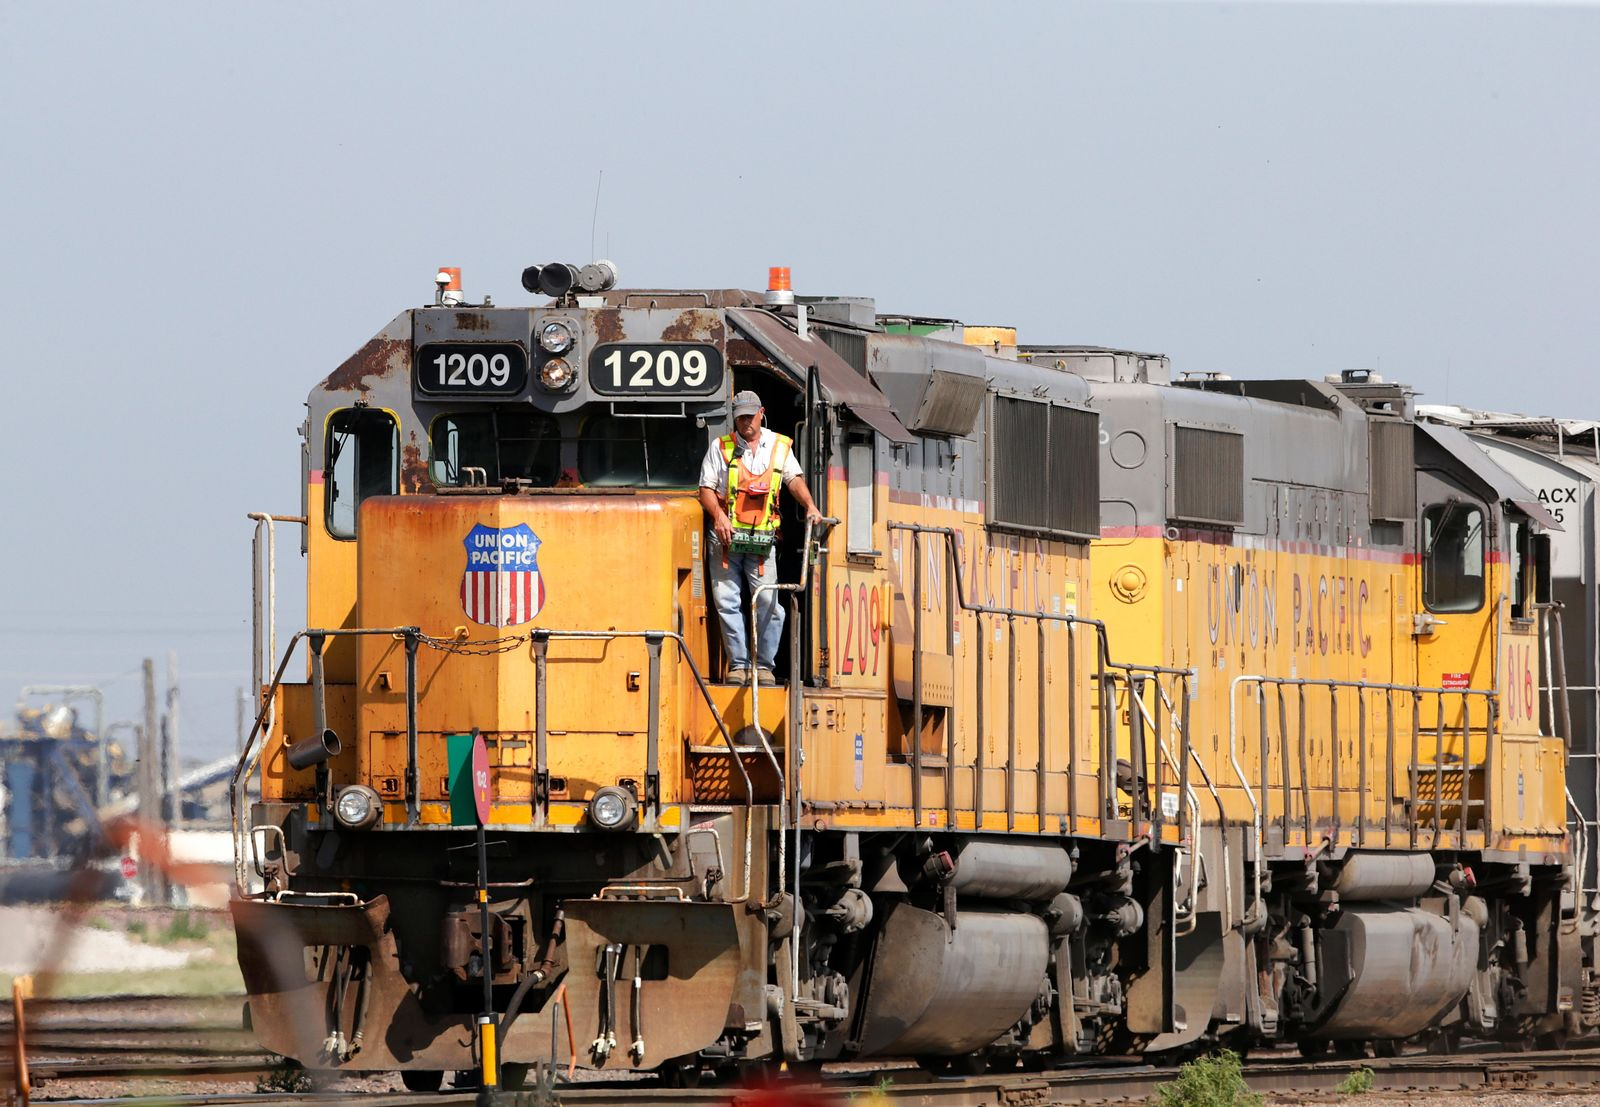 FILE - In this July 20, 2017, file photo, a Union Pacific Railroad Company employee stands on a locomotive in Council Bluffs, Iowa. More than two dozen major companies ranging from Campbell Soup to Kia filed anti-trust lawsuits on Sept. 30, 2019 against the nation's four largest railway companies, contending the railroads had a price-fixing scheme to illegally boost profits. (AP Photo/Nati Harnik, File)